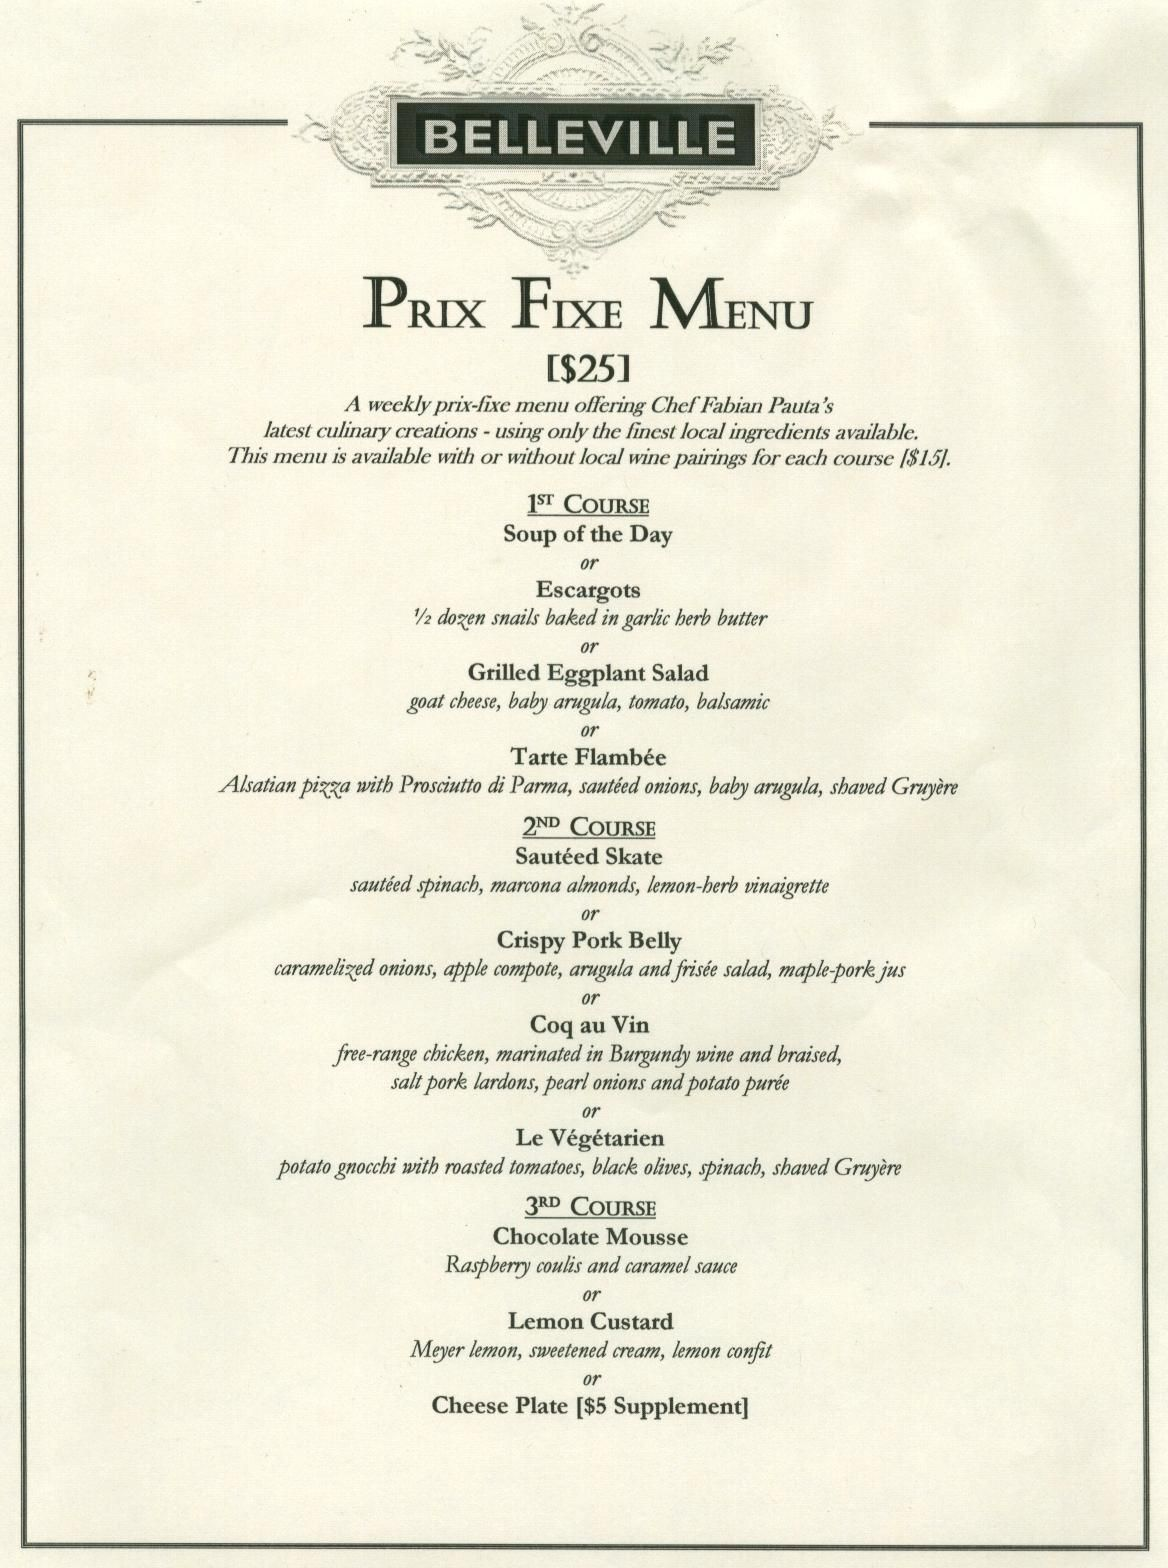 Preview: sequencing workshop, or prix fixe menu yoga sage rountree.